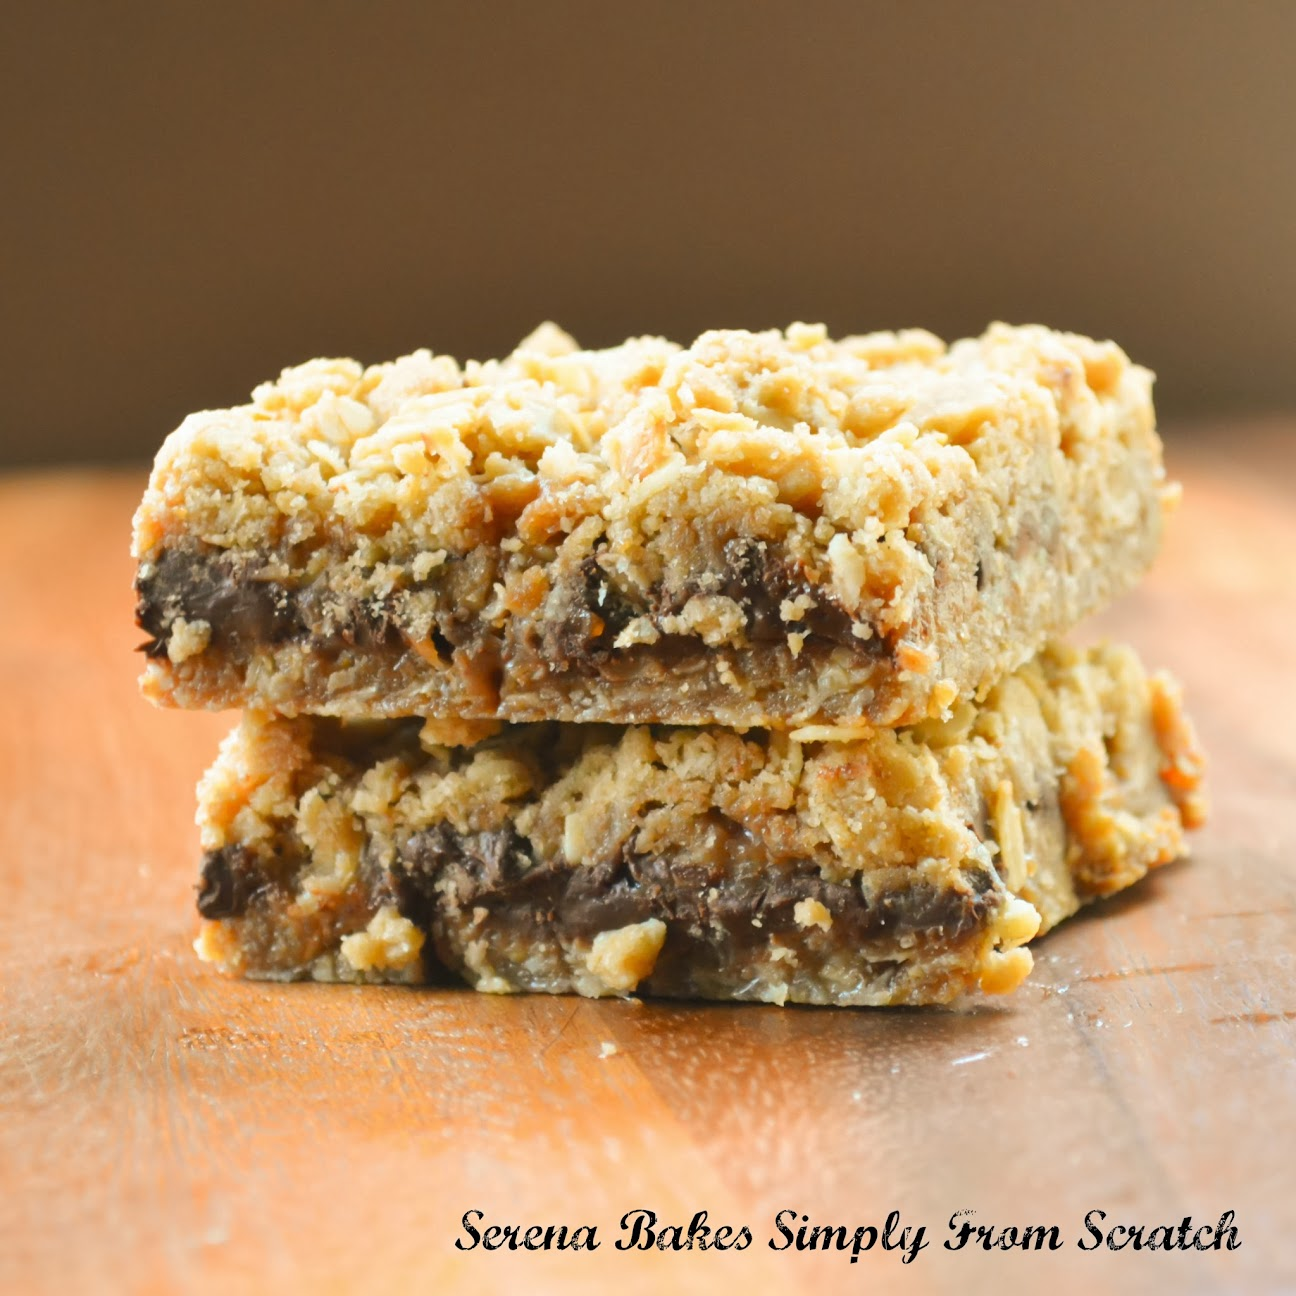 Oatmeal Chocolate Caramel Carmelitas | Serena Bakes Simply From ...